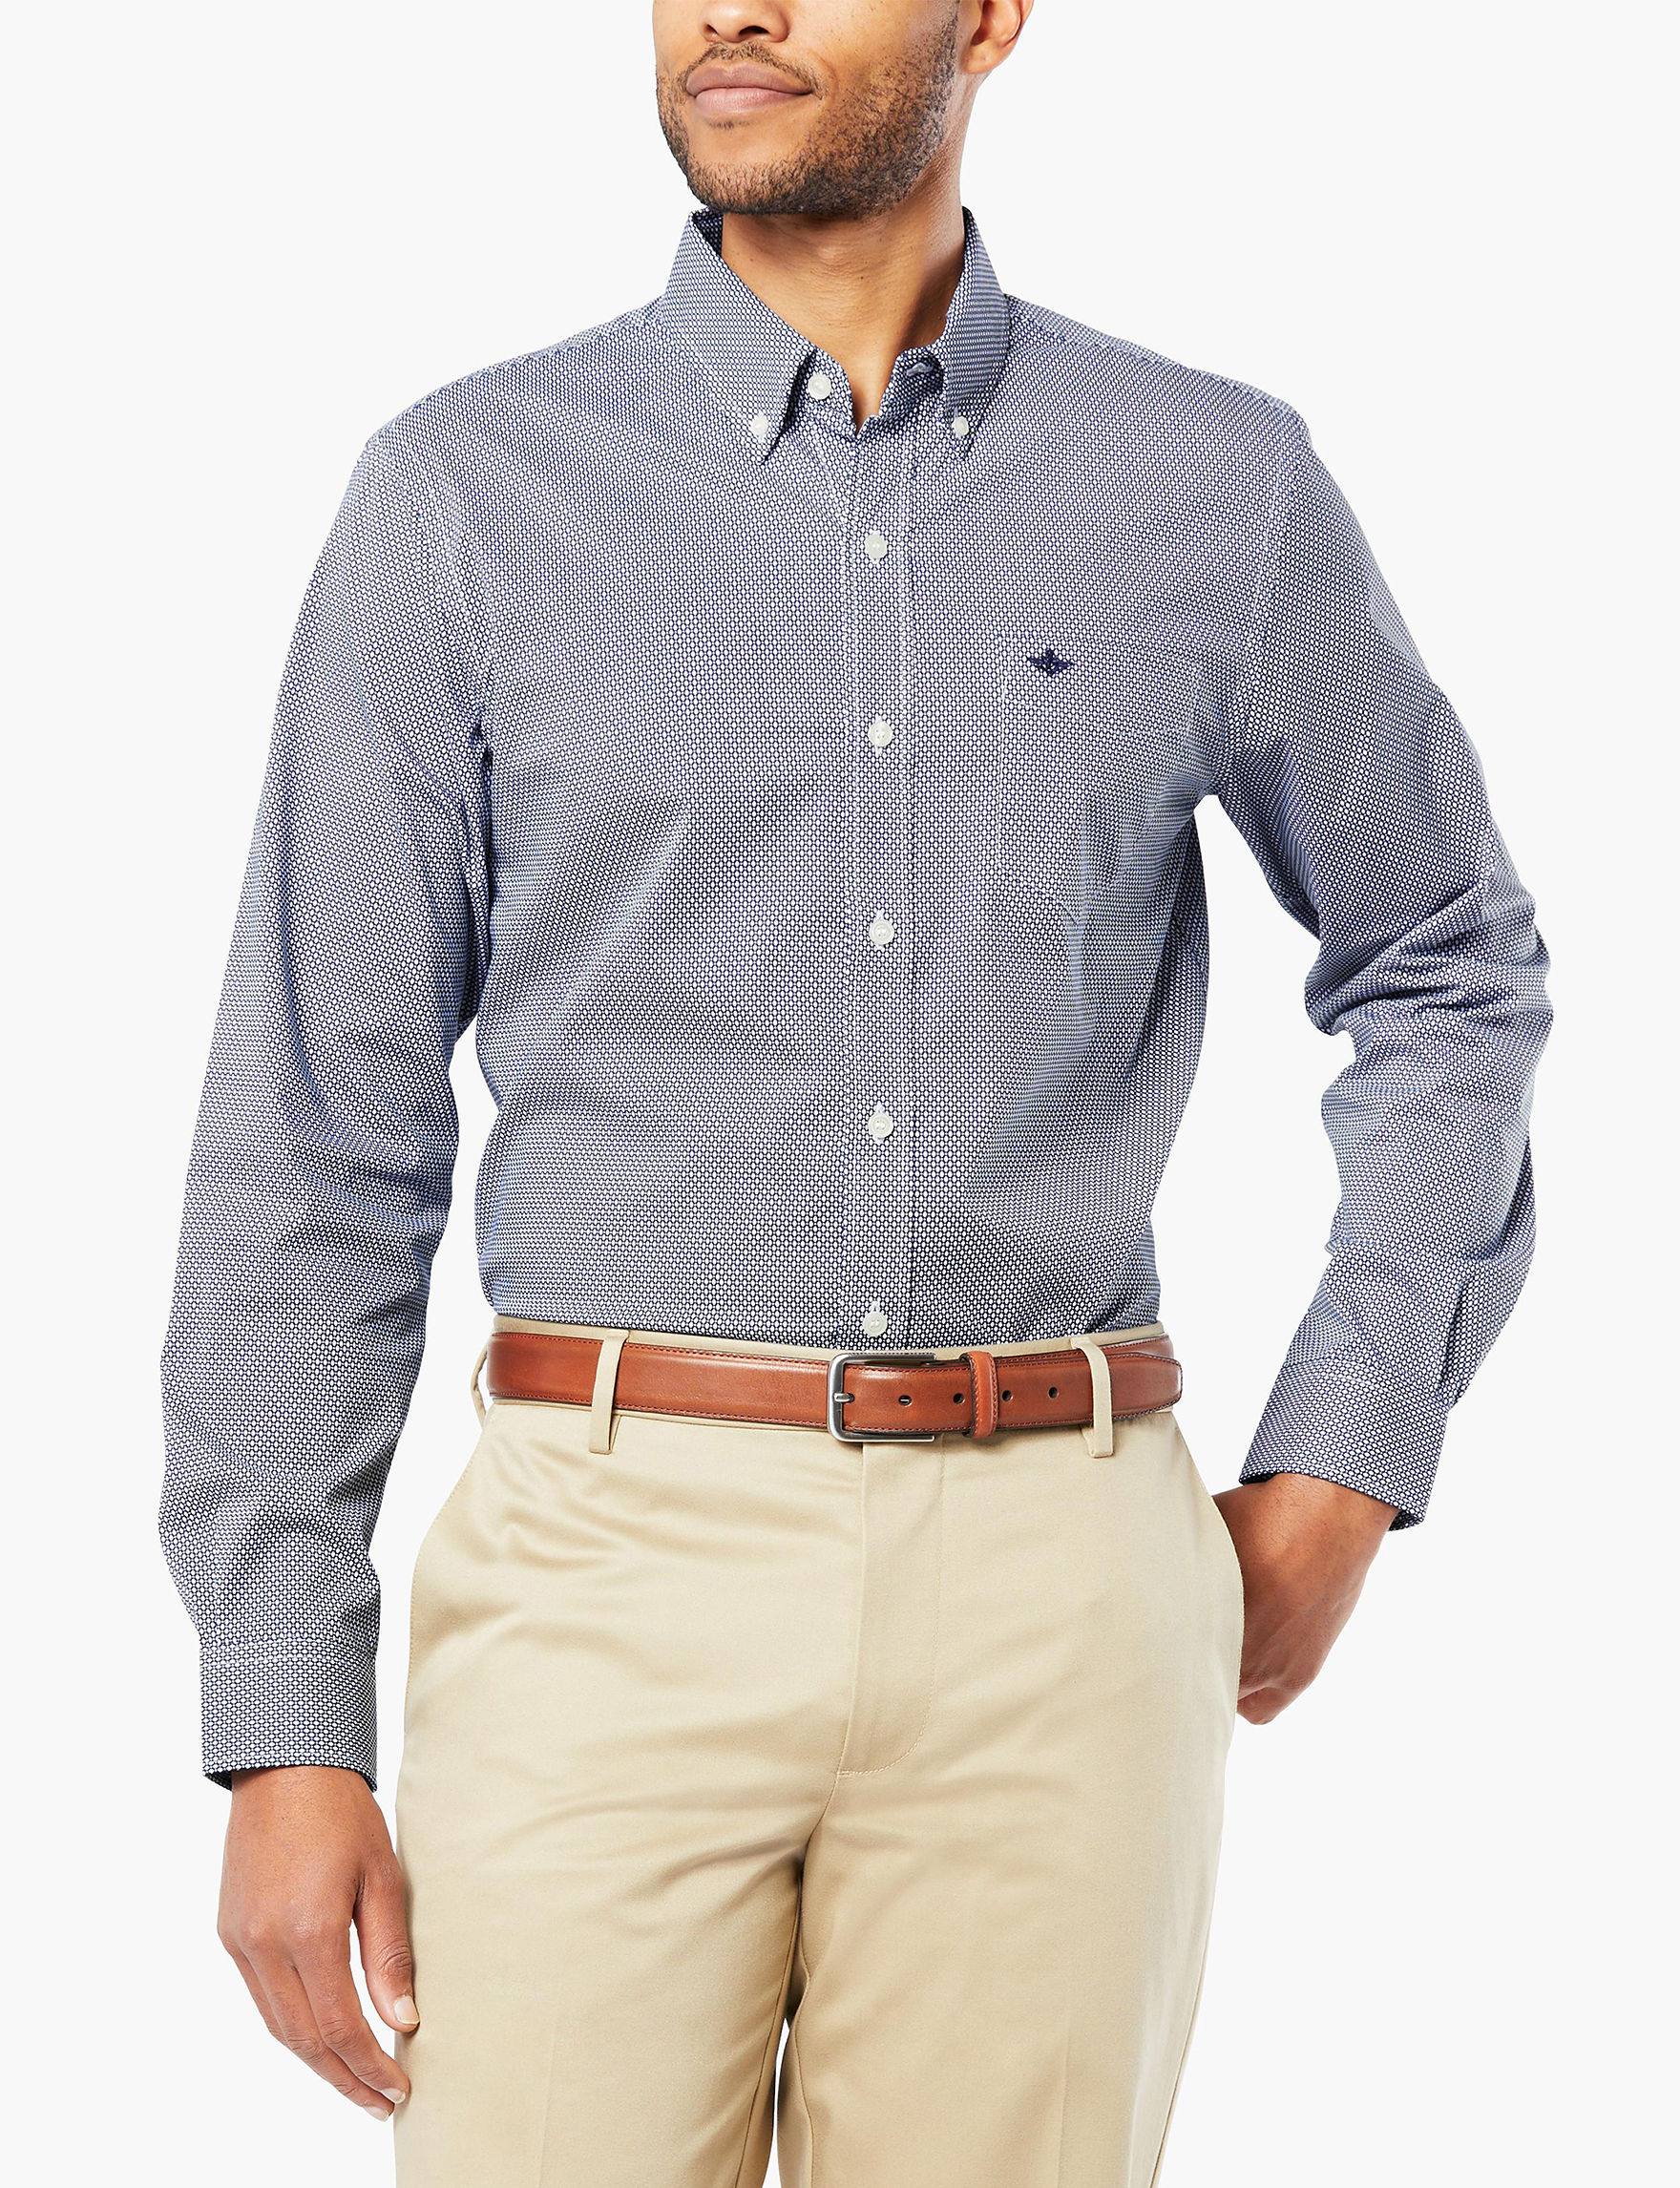 Dockers Ocean Blue Casual Button Down Shirts